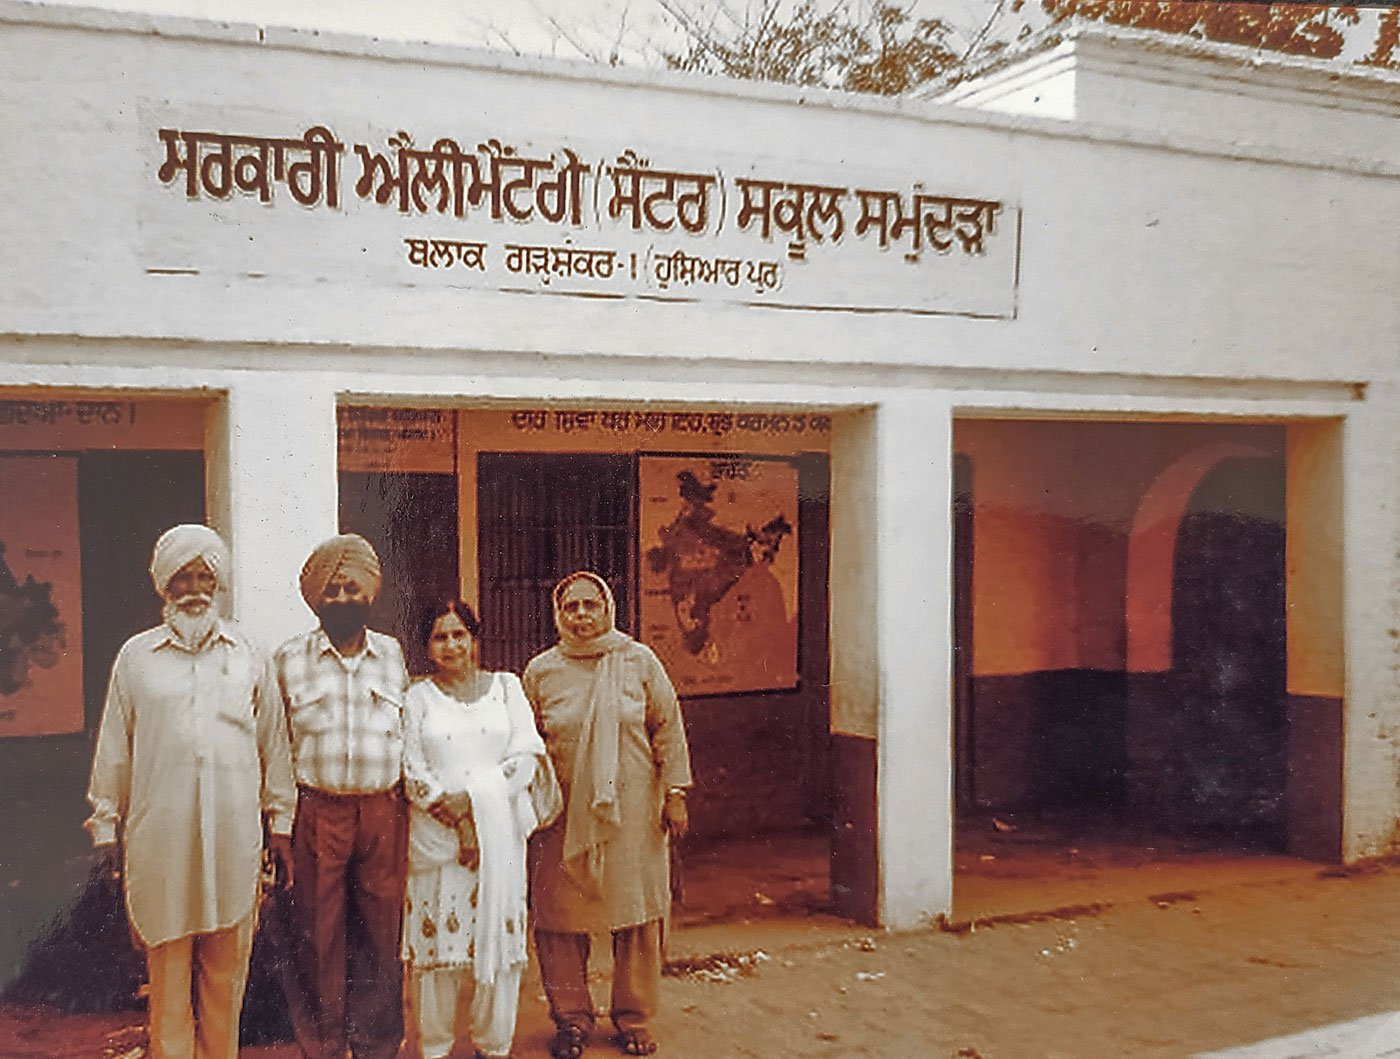 Bhagat Singh Jhuggian and his wife Gurdev Kaur, with two friends in between them, stand in front of the school, since renovated, that threw him out in 1939